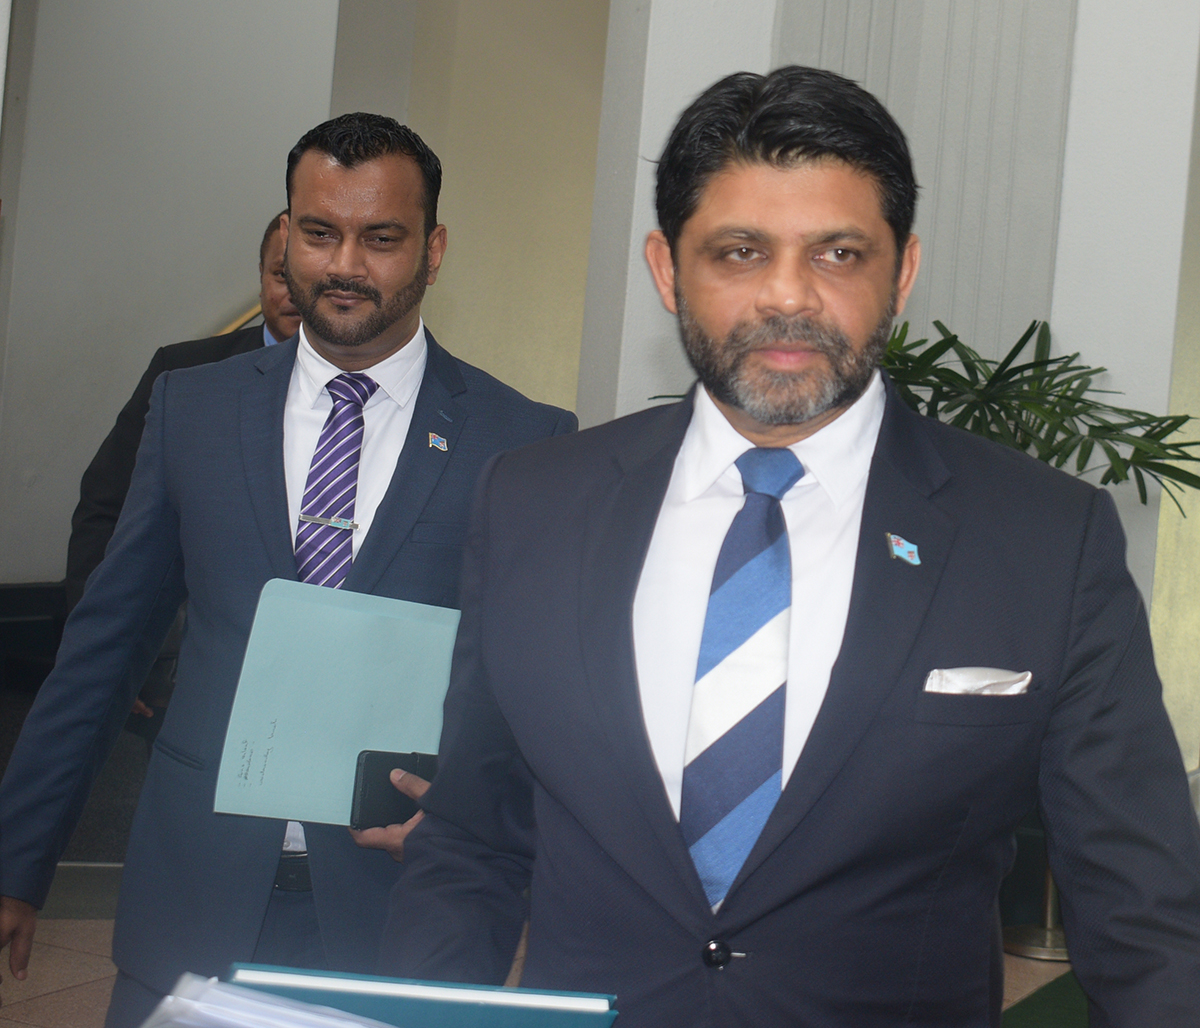 Attorney-General and Minister for Economy, Civil Service and Communications Aiyaz Sayed Khaiyum with the Assistant Minister for Employment, Productivity and Industrial Relations and Youth and Sports Alvick Maharaj on February 11,2019.Photo:Simione Haravanua.